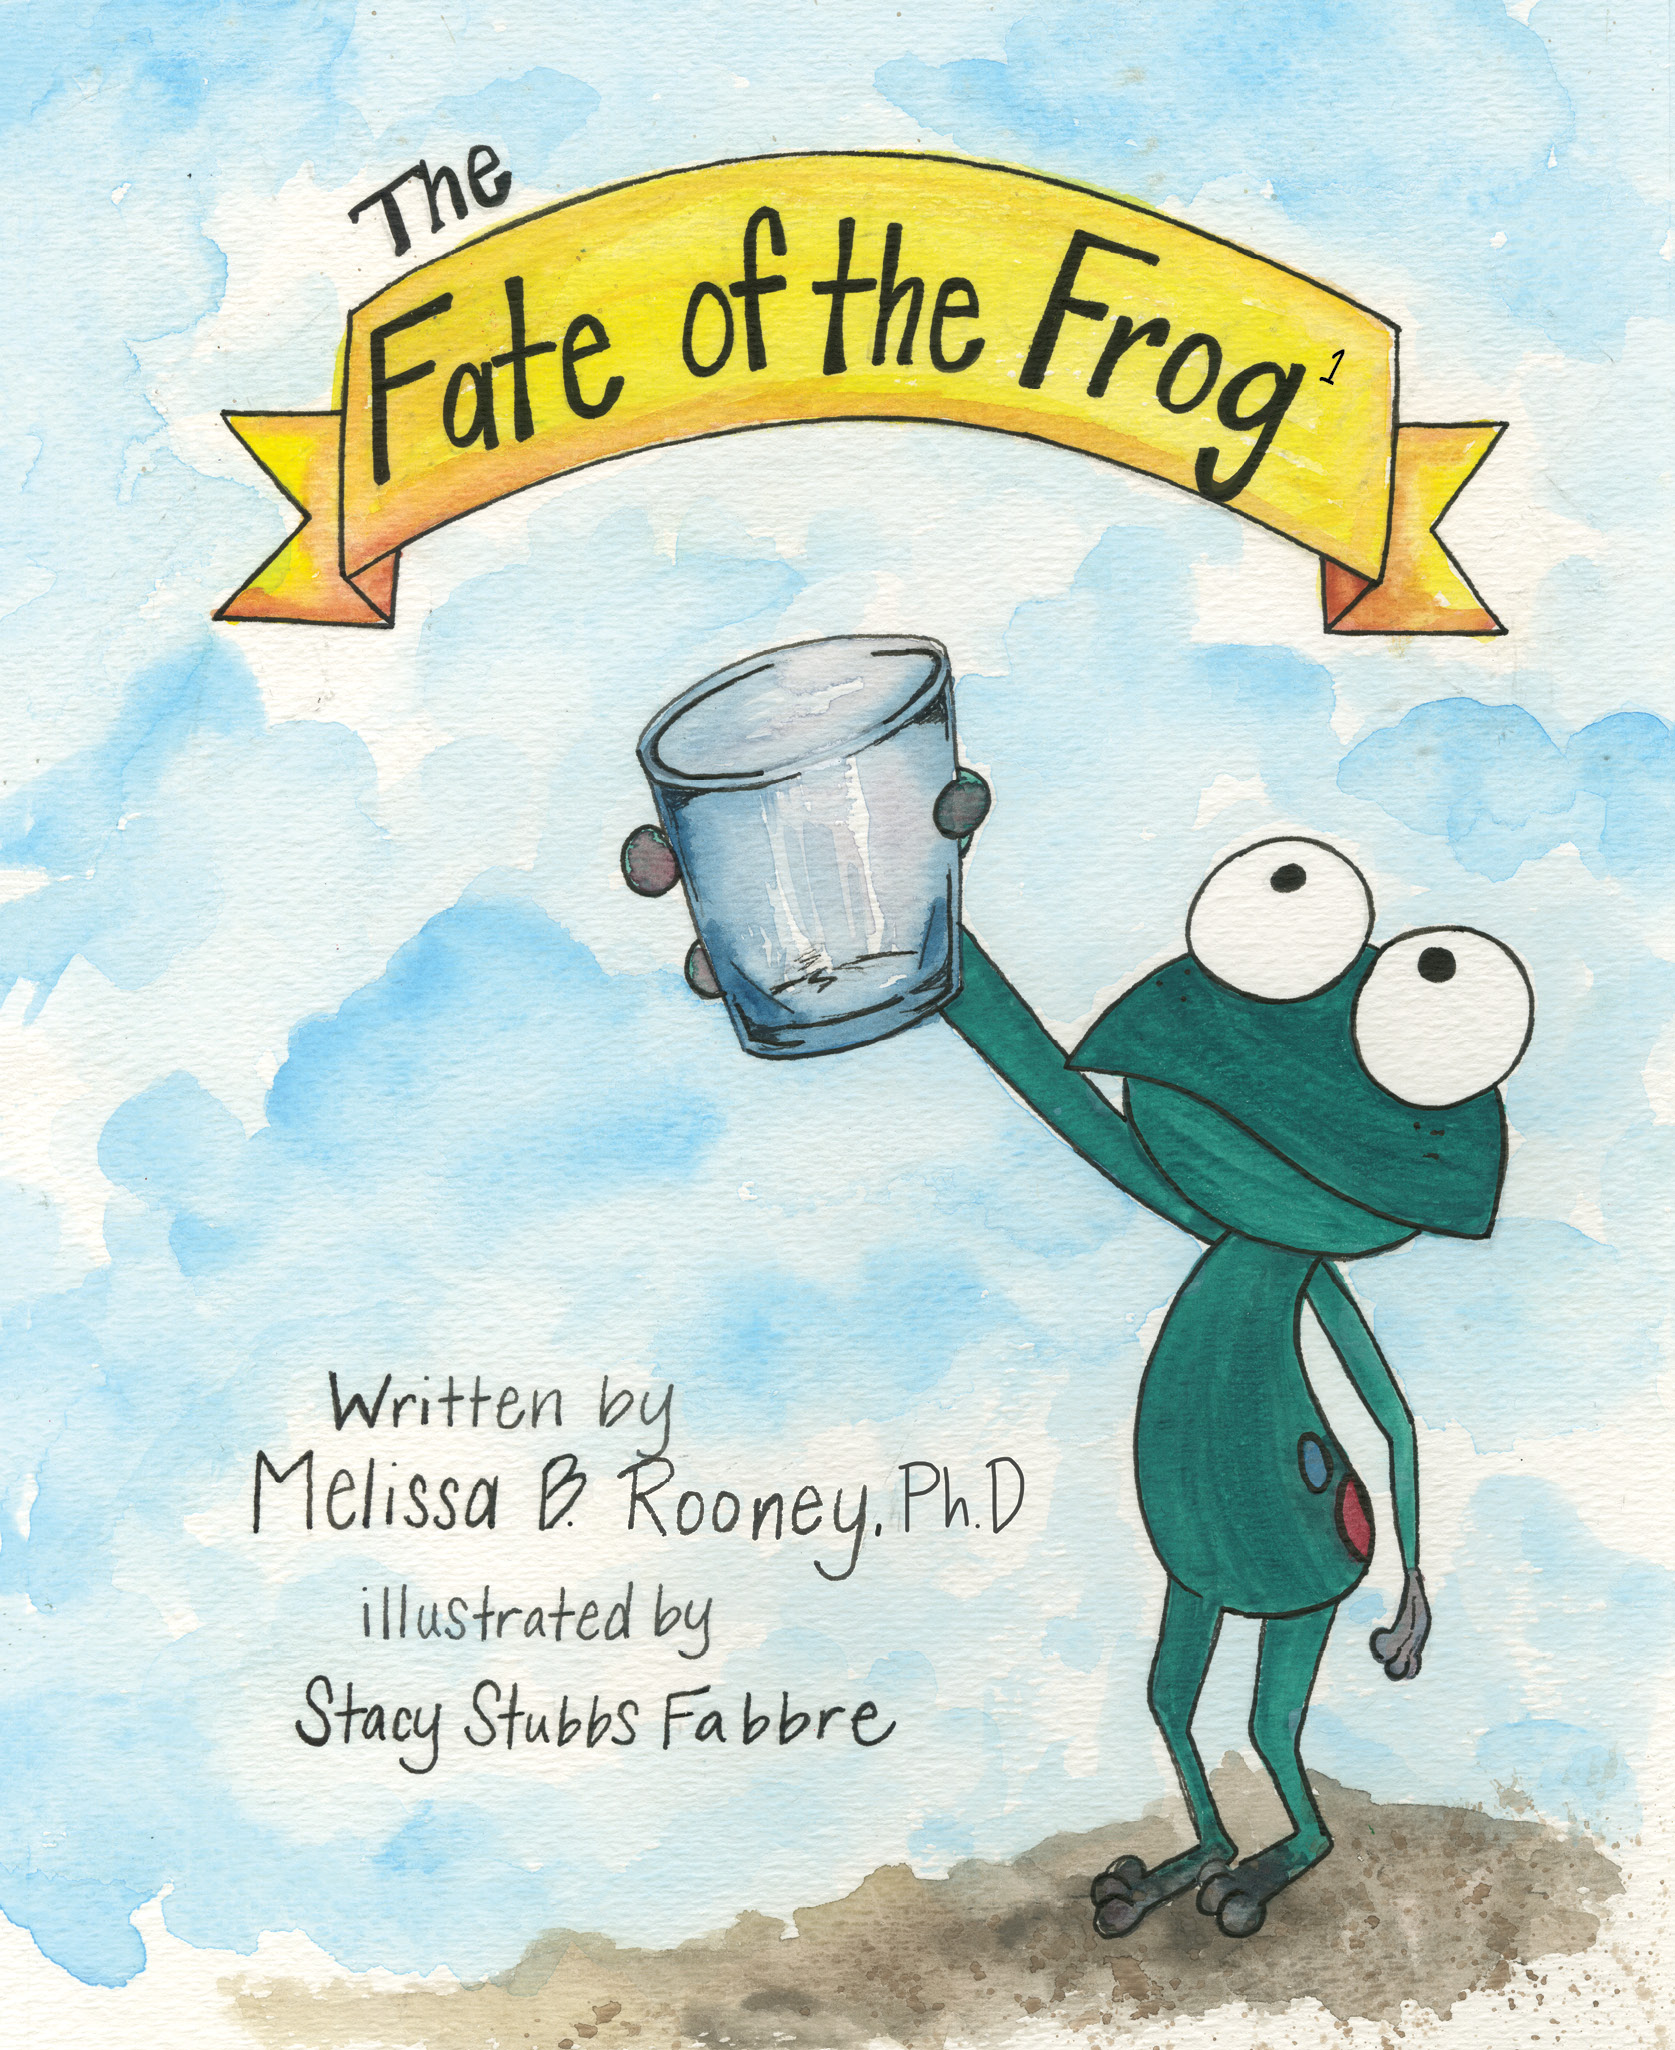 TheFateofTheFrog_Amazon